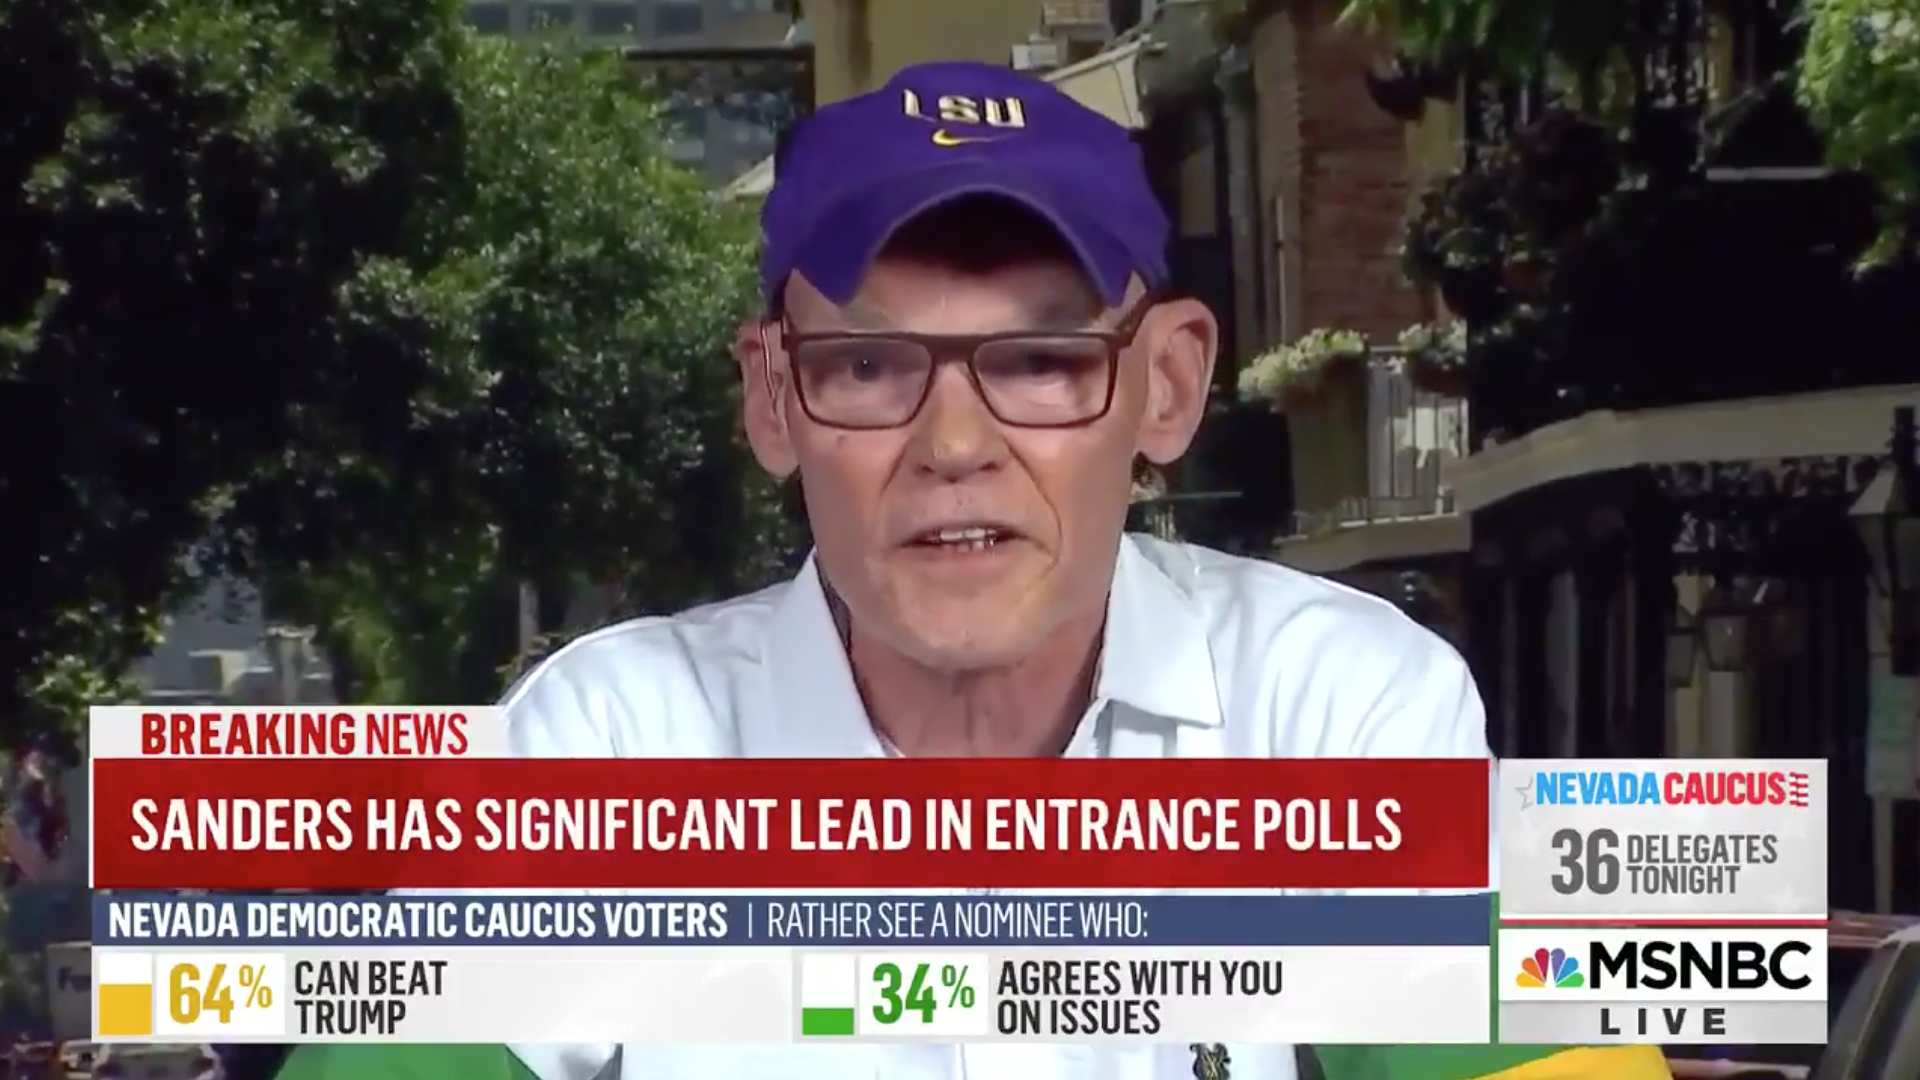 James Carville rips DNC as Bernie Sanders wins Nevada: 'One of the truly stupid parties in the world'